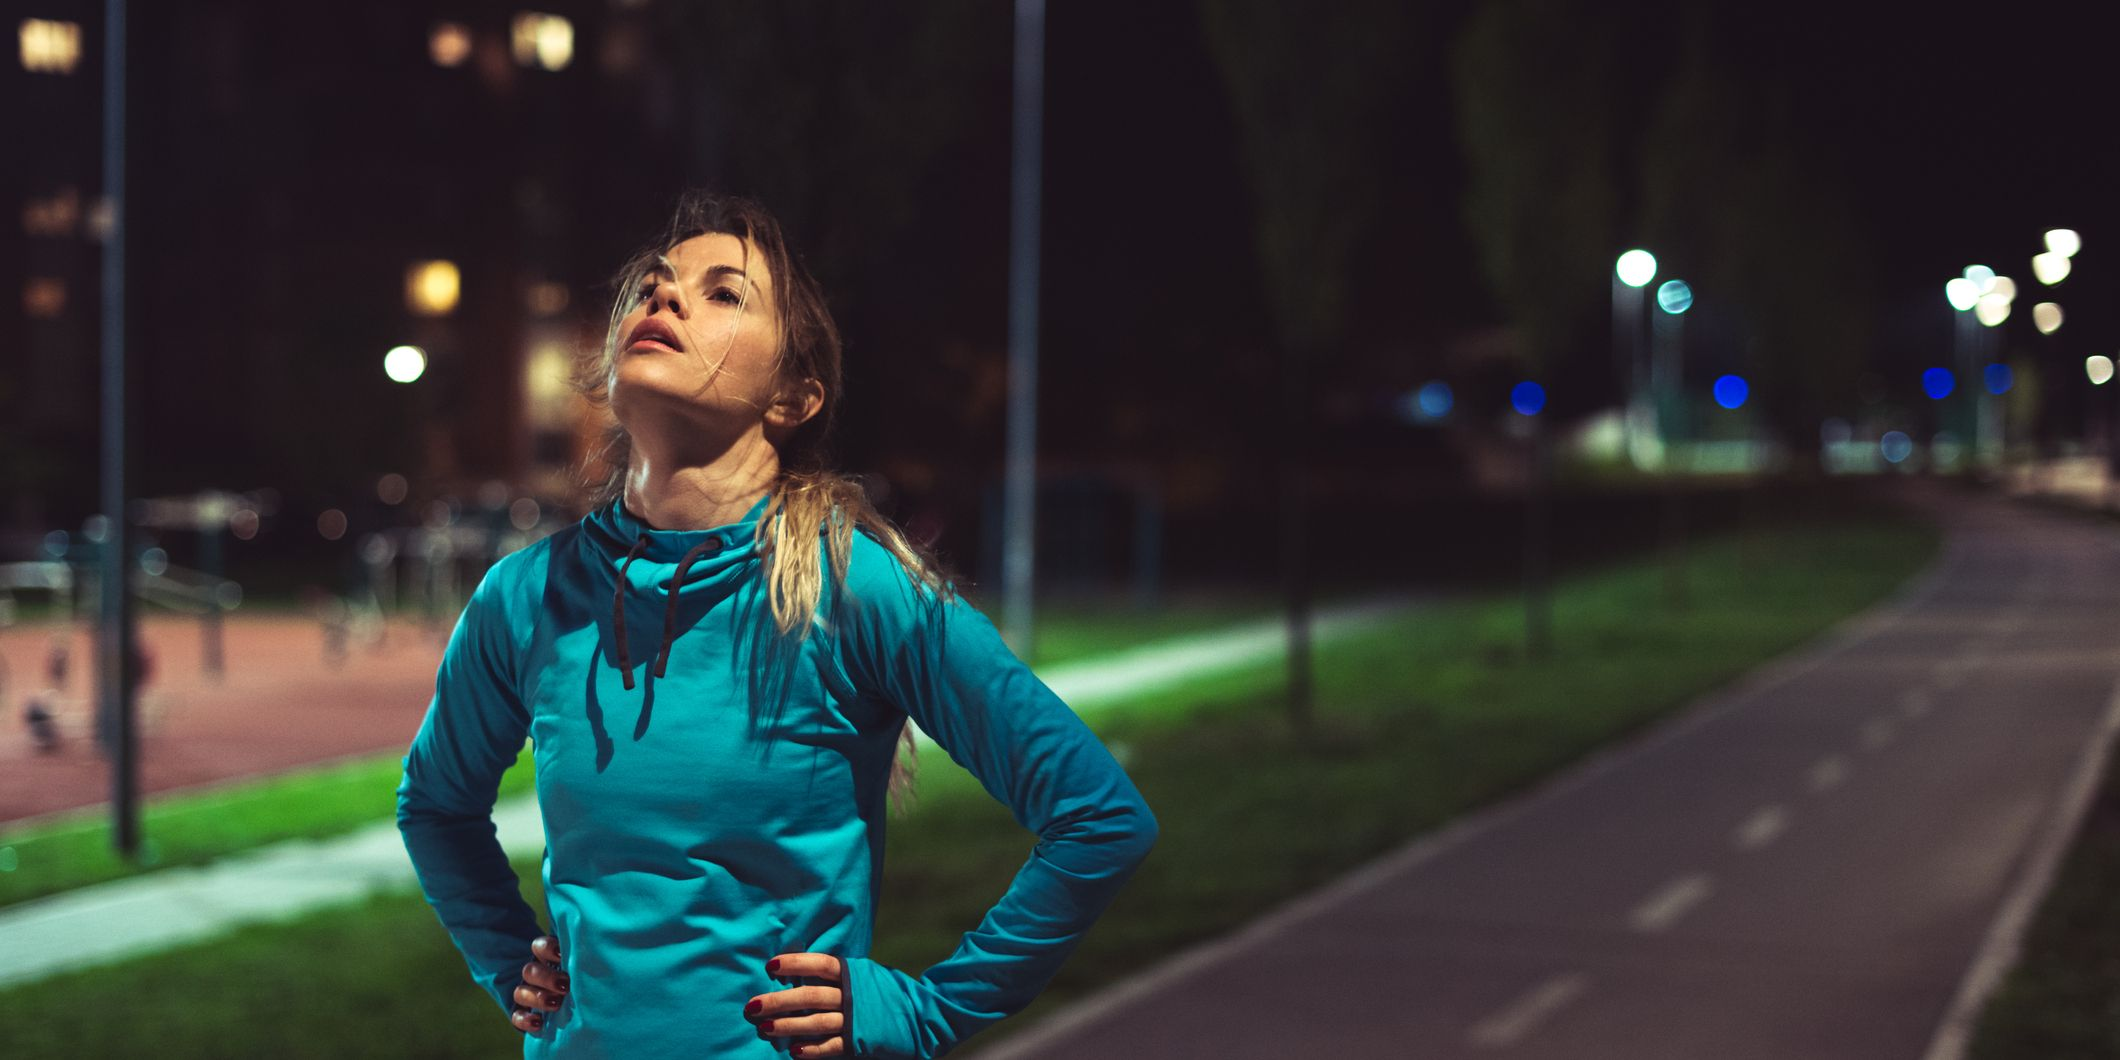 Signs of overtraining syndrome